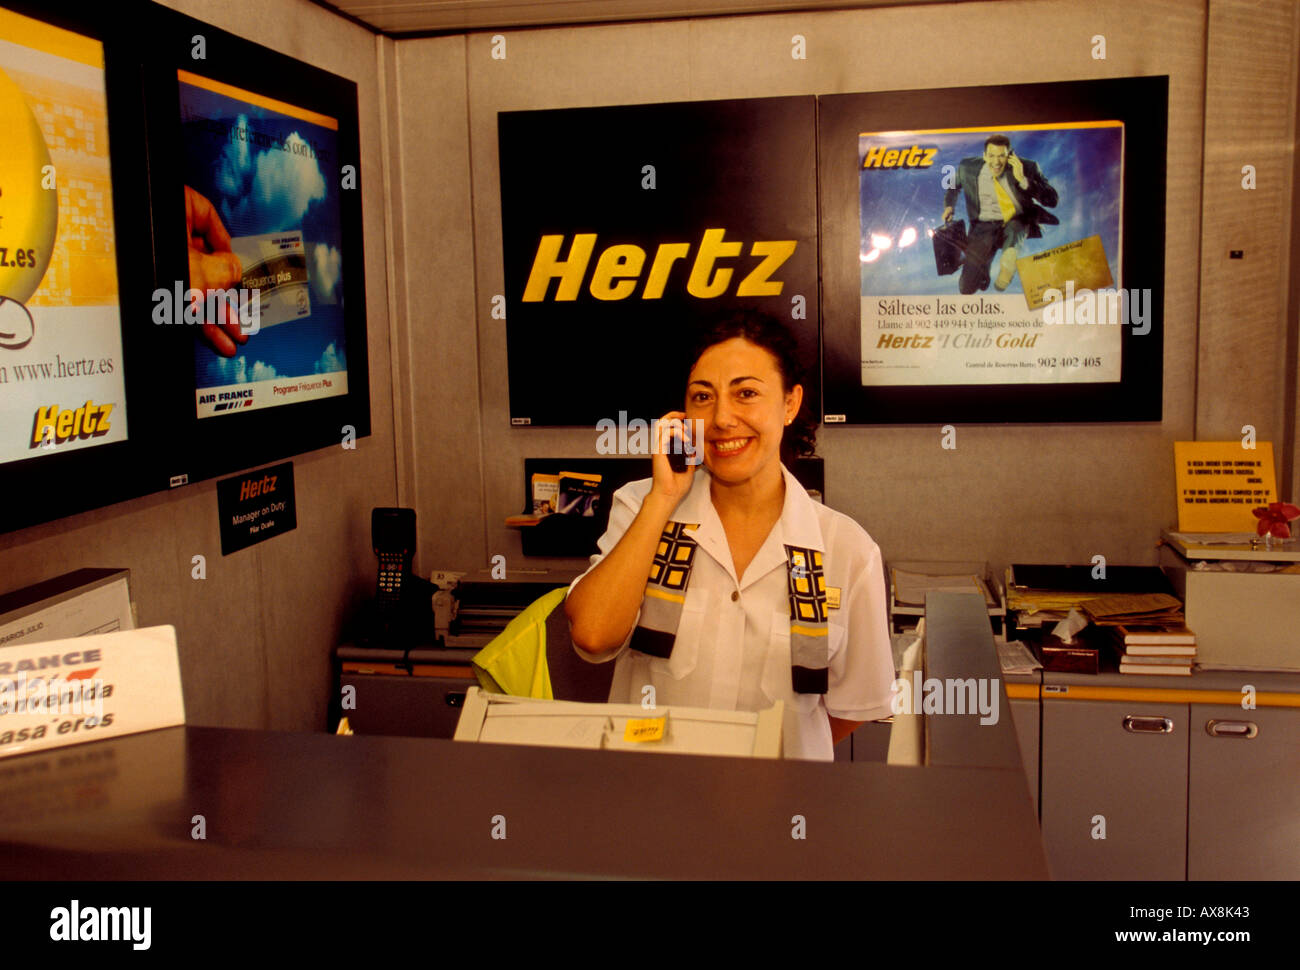 Rental Car Employee Stock Photos & Rental Car Employee Stock Images ...